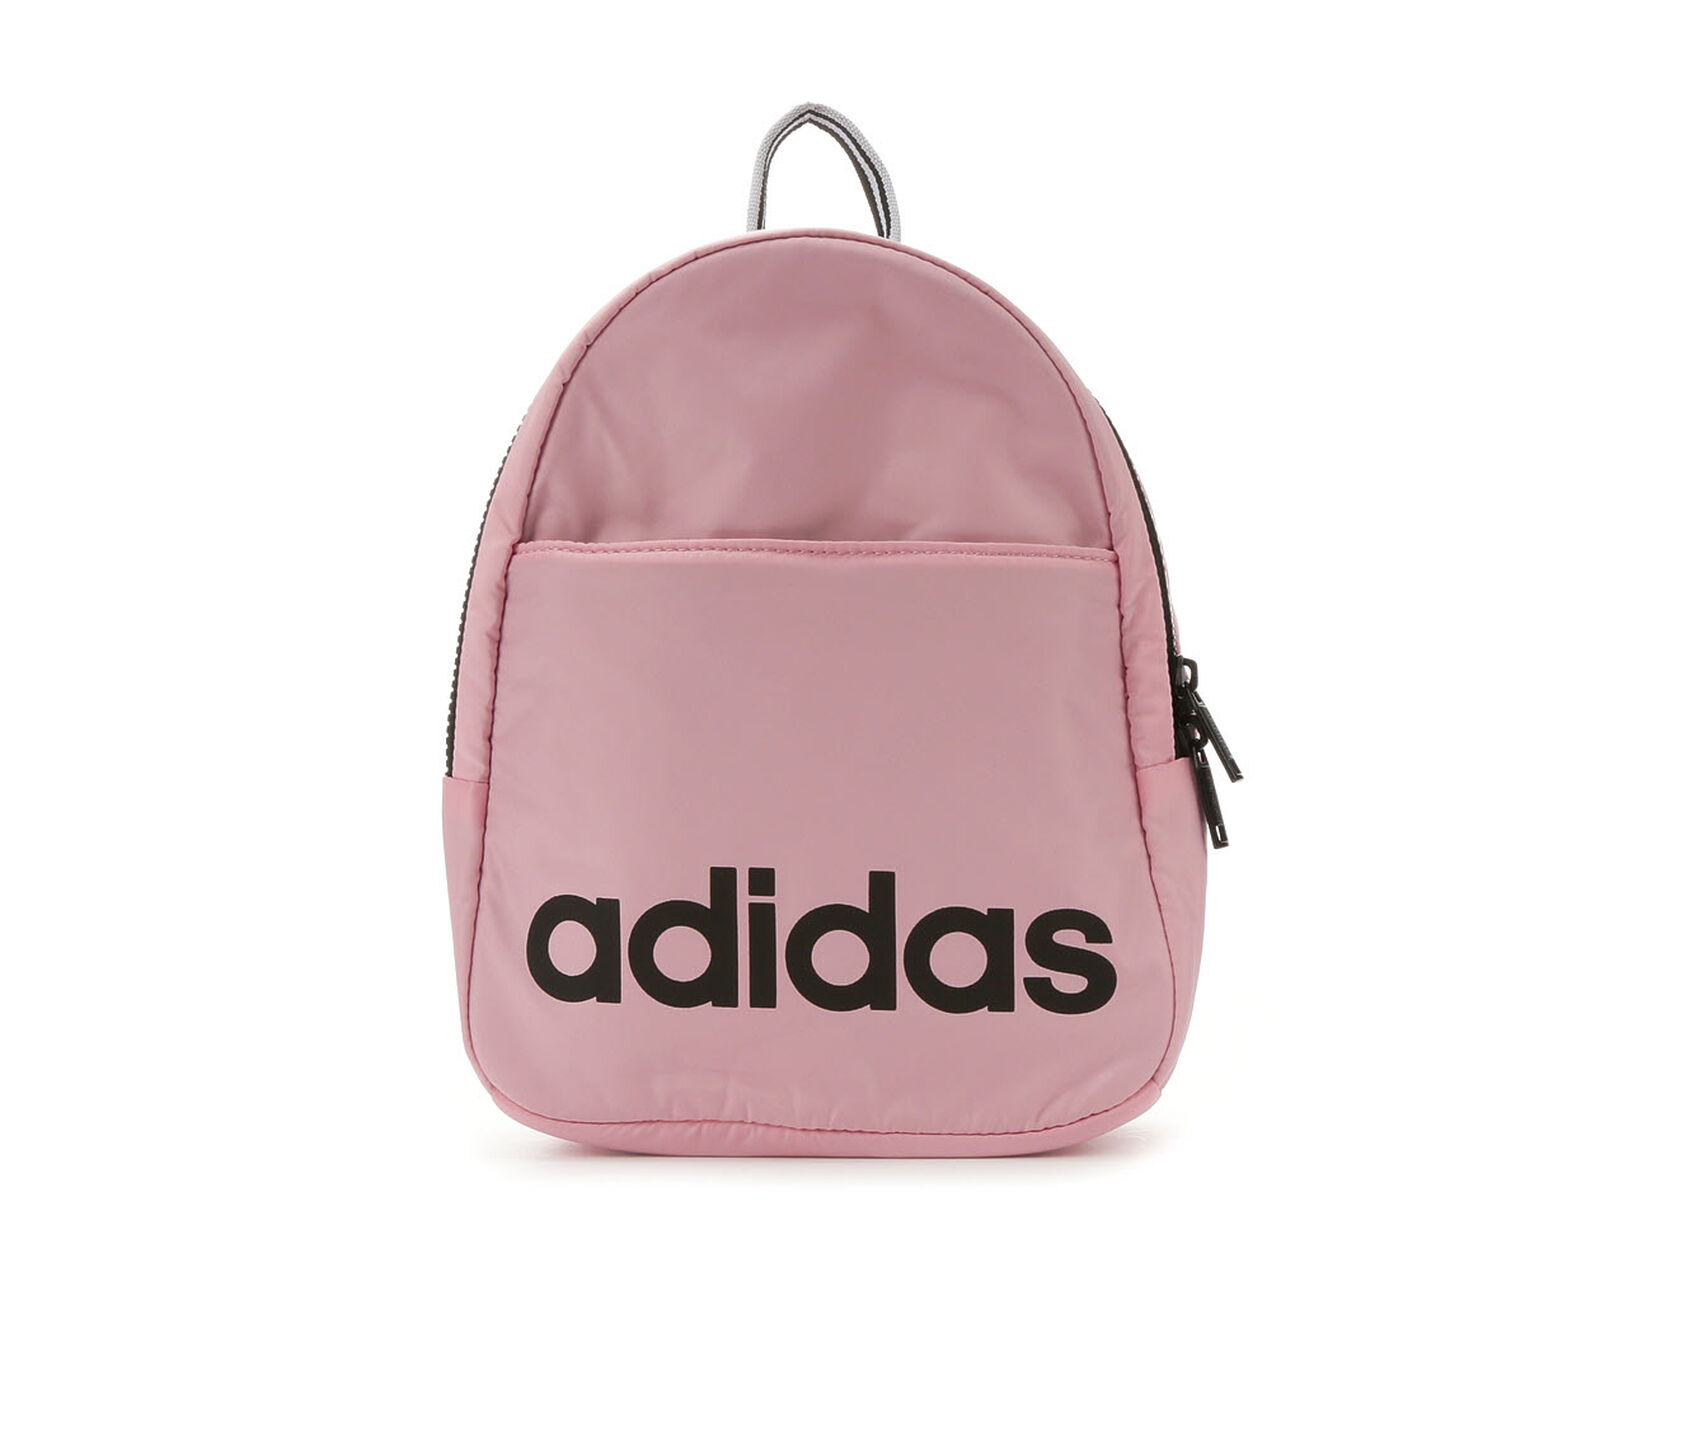 11c42c4e7e26 Adidas Core Mini Backpack. Previous